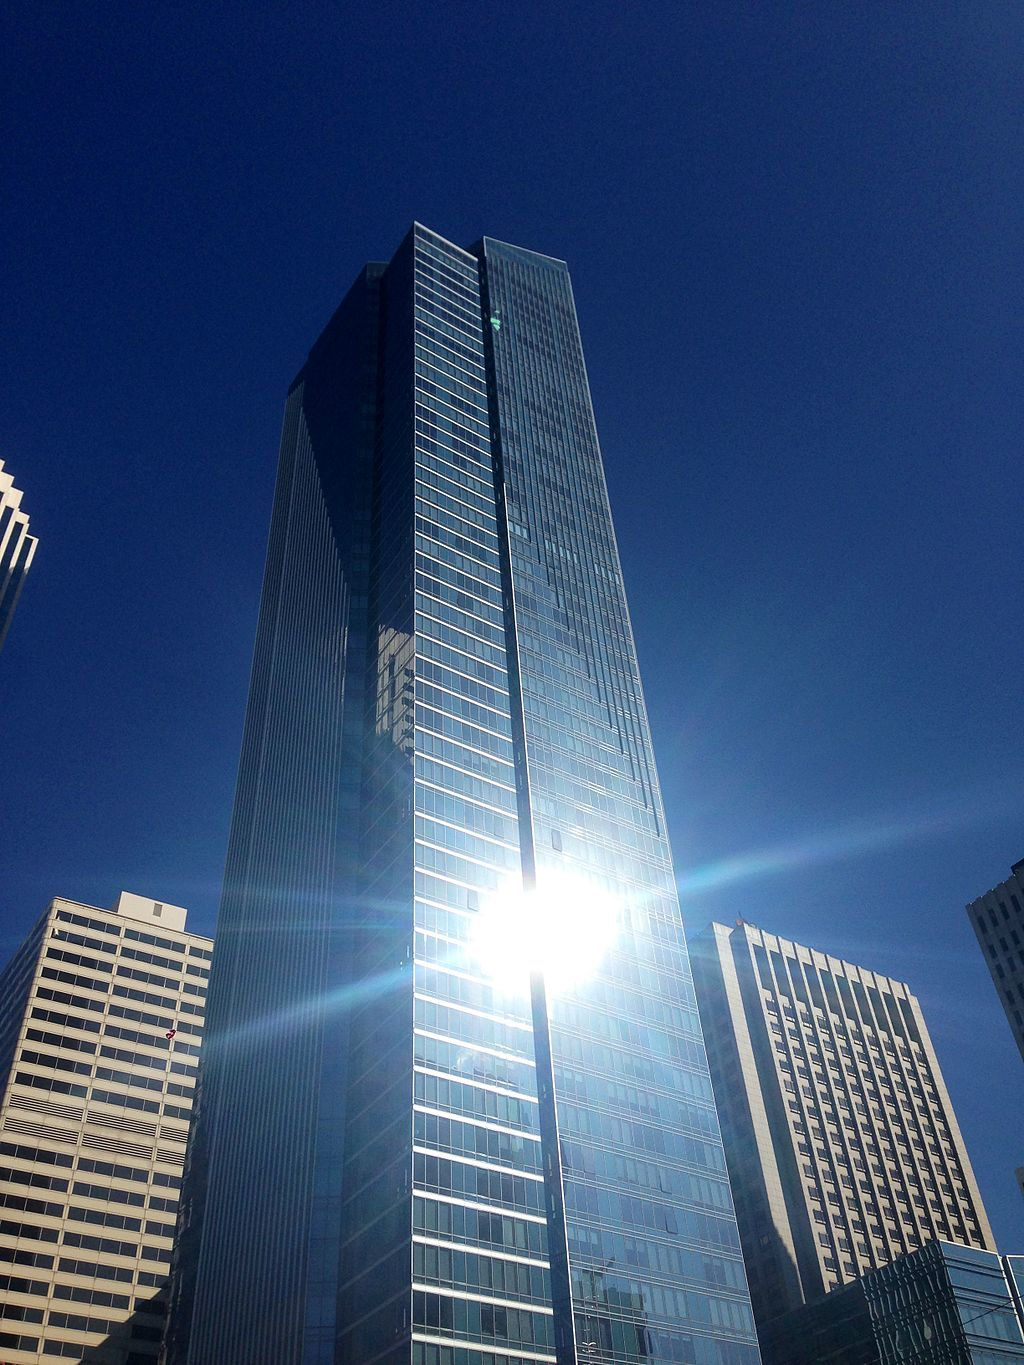 "The Millenium Tower in San Francisco is <a href=""http://archinect.com/news/article/149961306/luxury-condos-sink-in-san-francisco-s-millennium-towerl"">sinking</a>, provoking concerns about similar projects. Image via wikimedia."